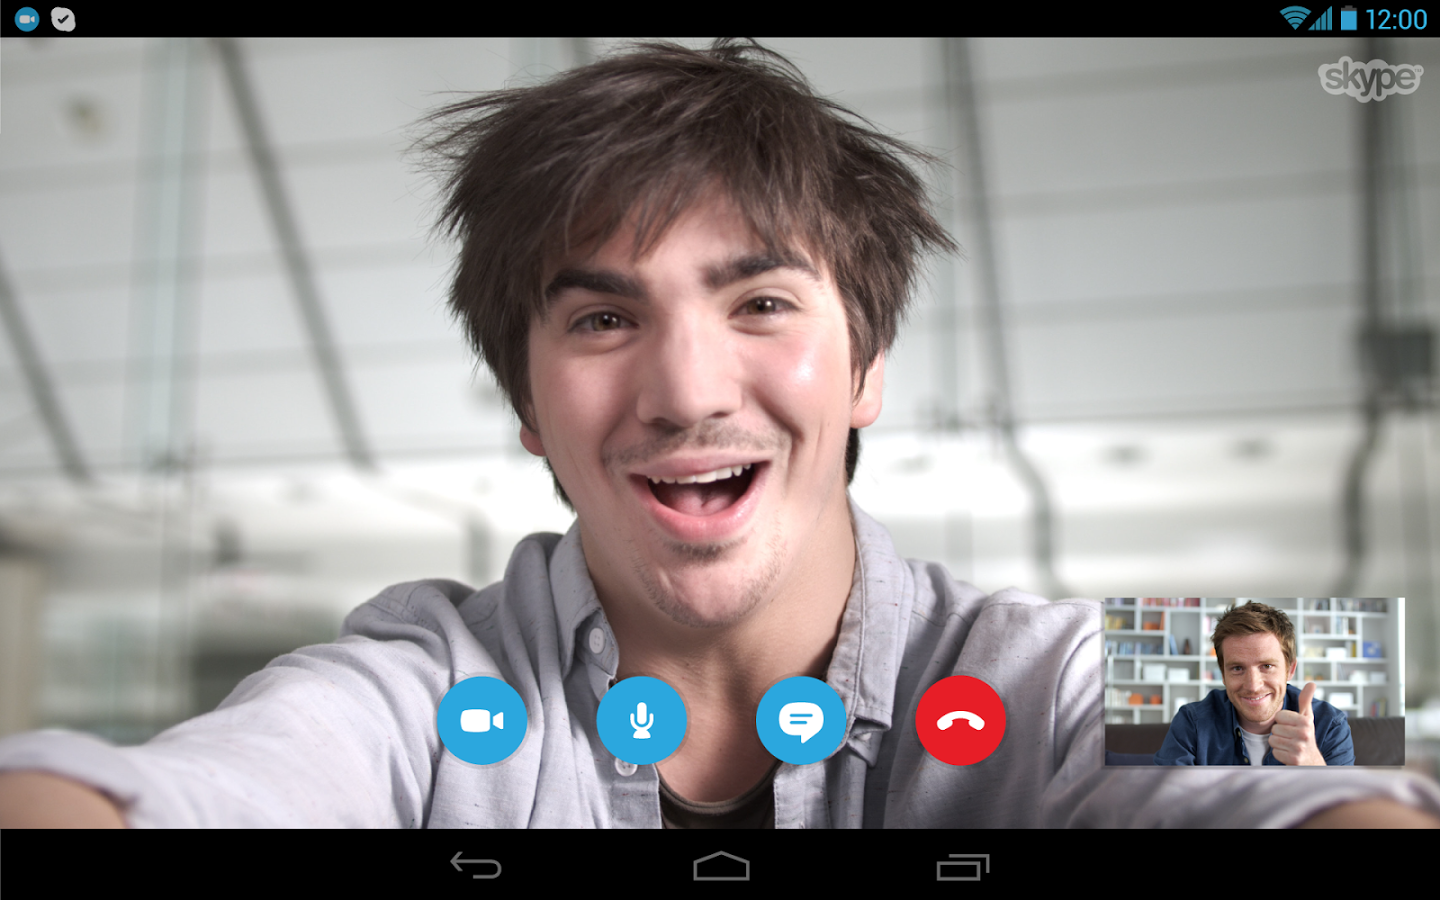 Skype picture-in-picture video chat